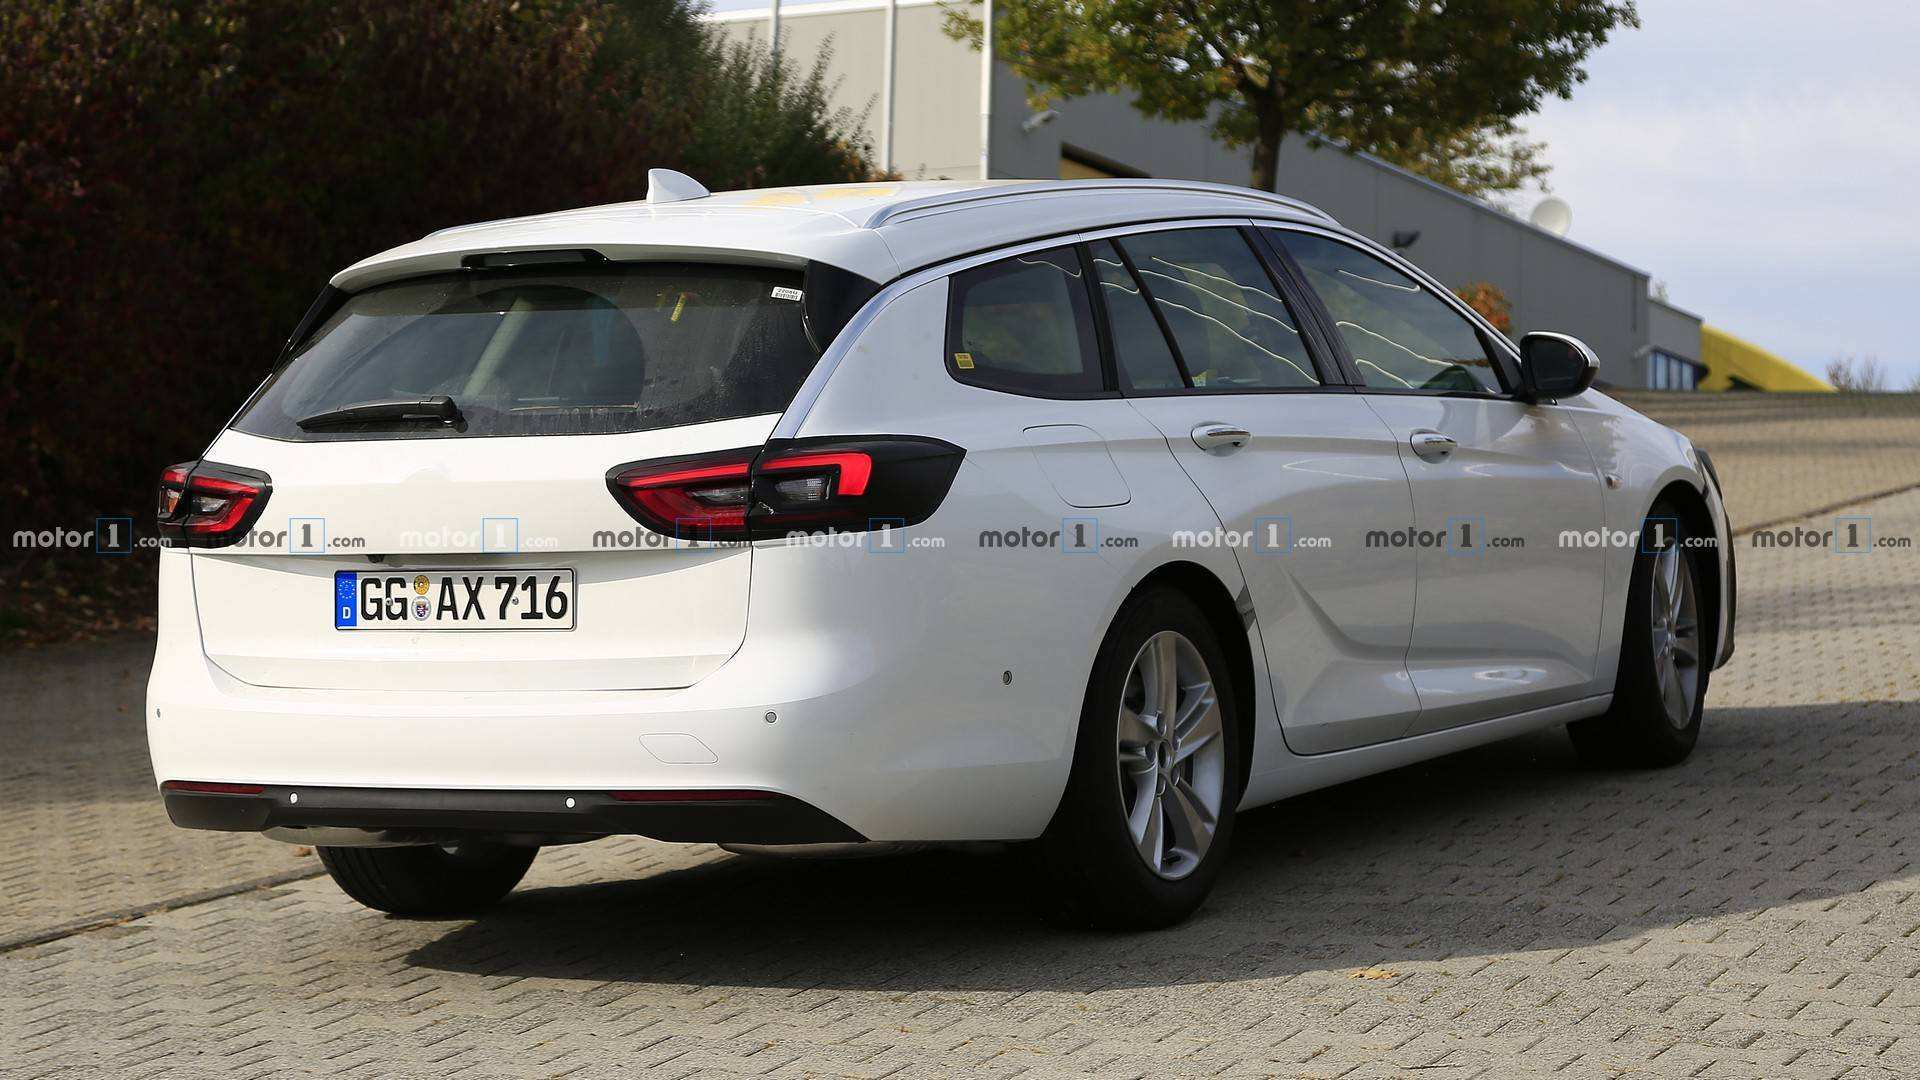 40 Gallery of Opel Insignia Facelift 2020 History for Opel Insignia Facelift 2020